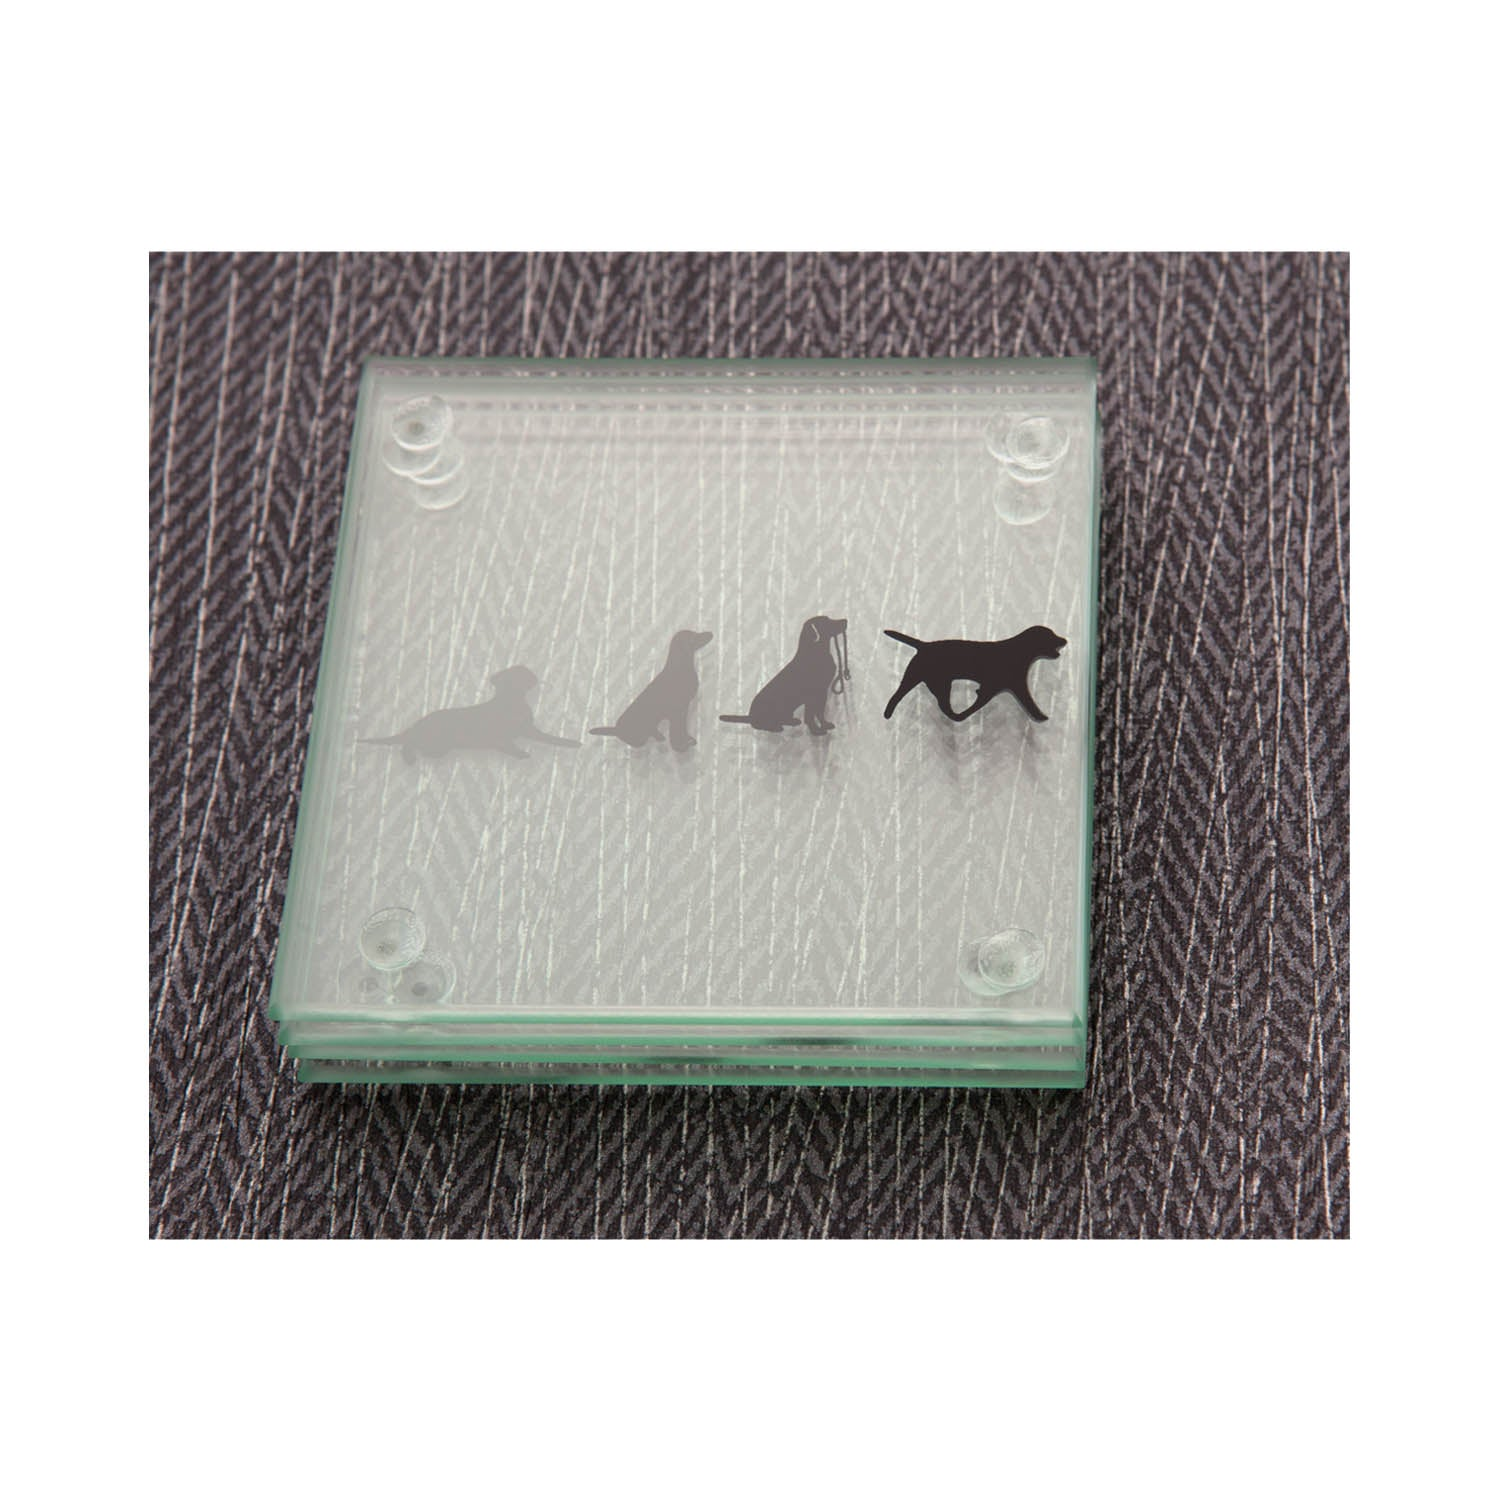 Dog Lover Gifts available at Dog Krazy Gifts - Black Labrador Glass Story Coasters- Part of the Labrador range available from Dog Krazy Gifts